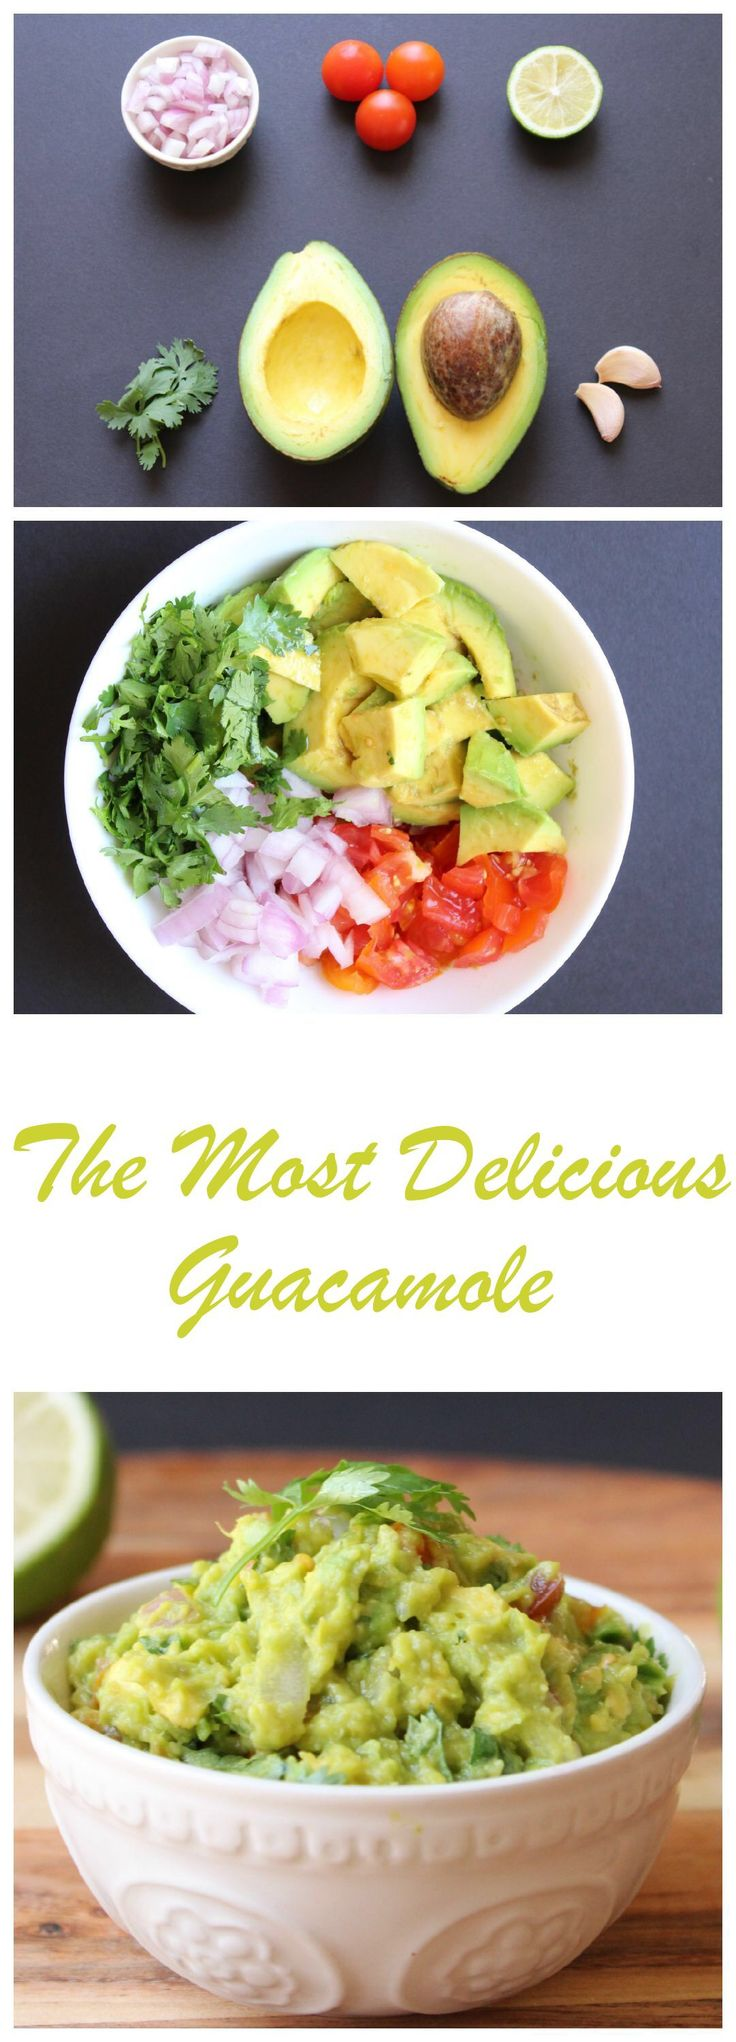 The Most Delicious Guacamole Recipe! Read More : http://fitgirlshabits.com/mexican-party-guacamole/#more-154